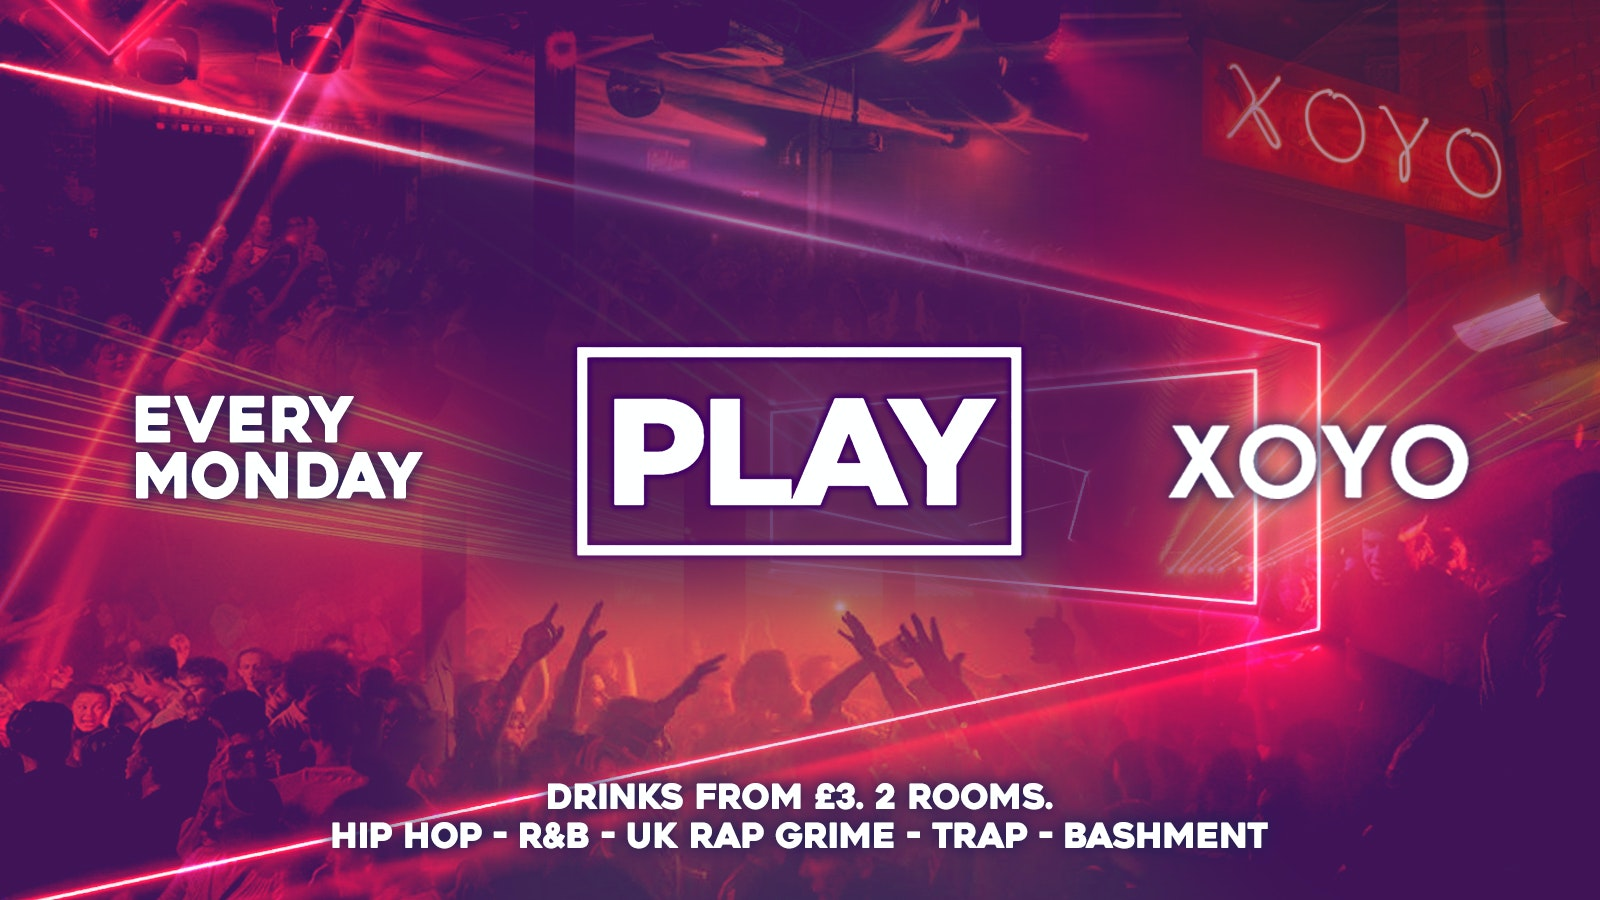 Play London is BACK @ XOYO! The Biggest Weekly Monday Student Night in London // This event will SELL OUT